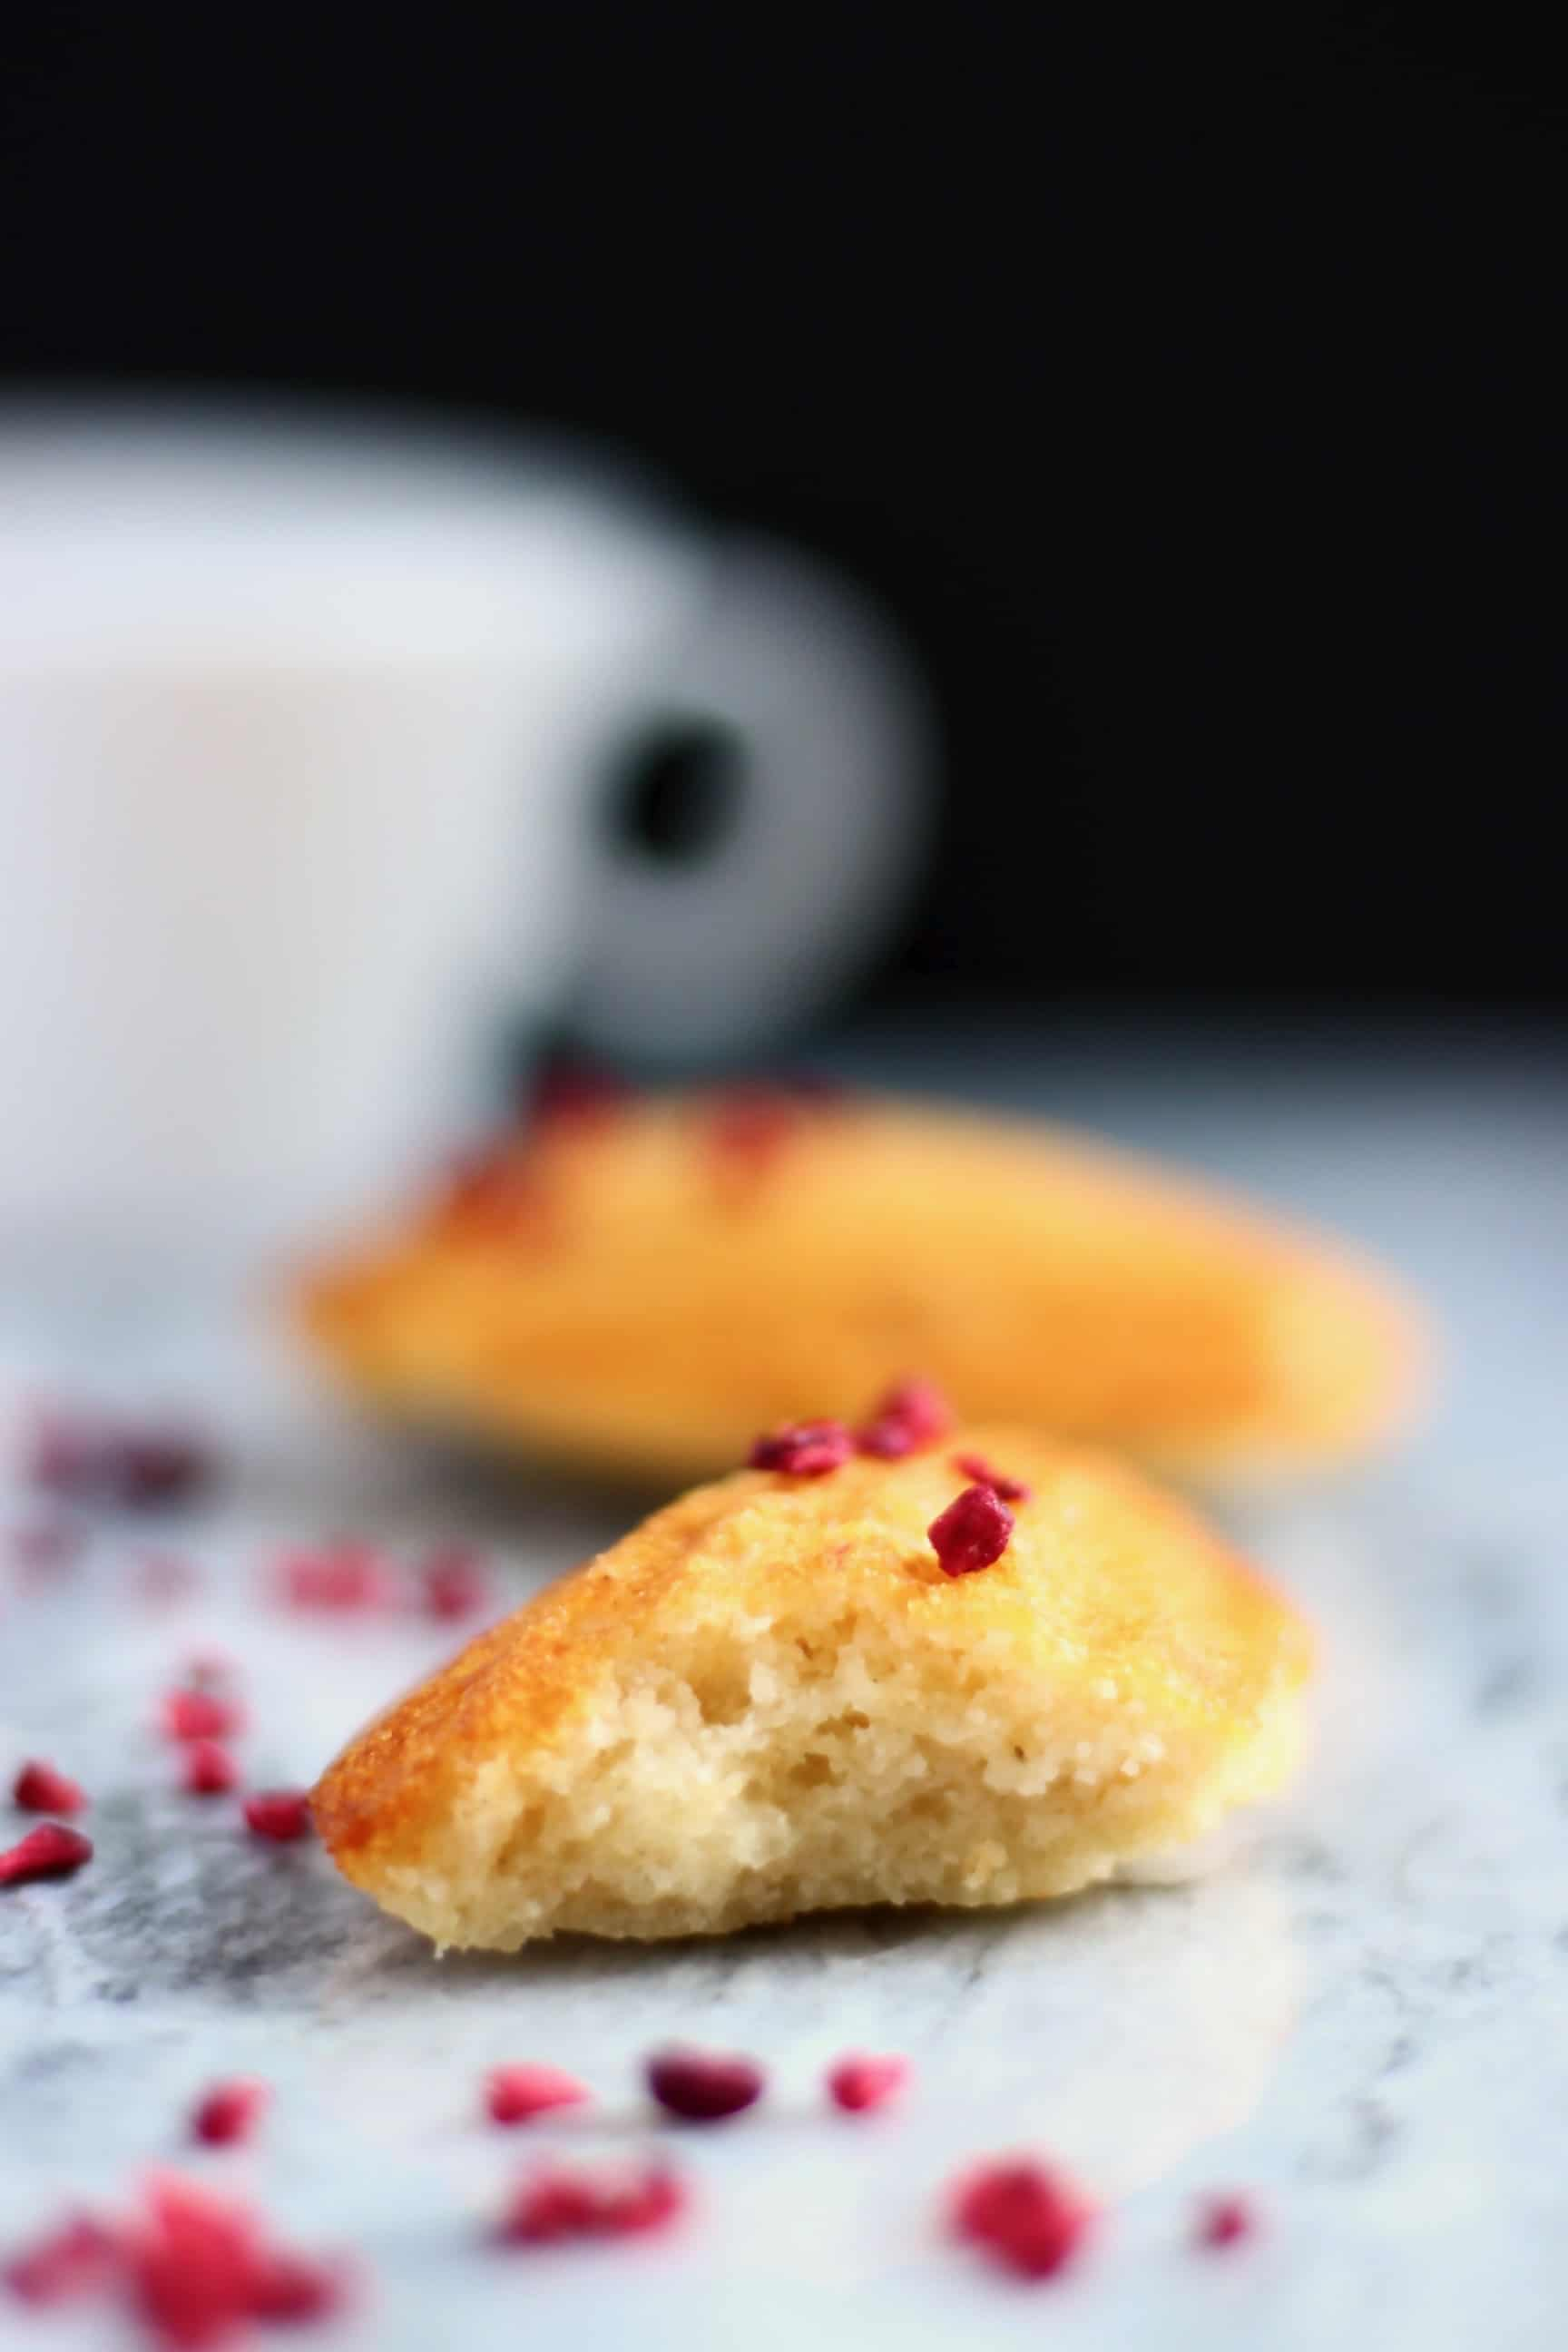 Two gluten-free vegan madeleines on a marble background with a white cup against a black background